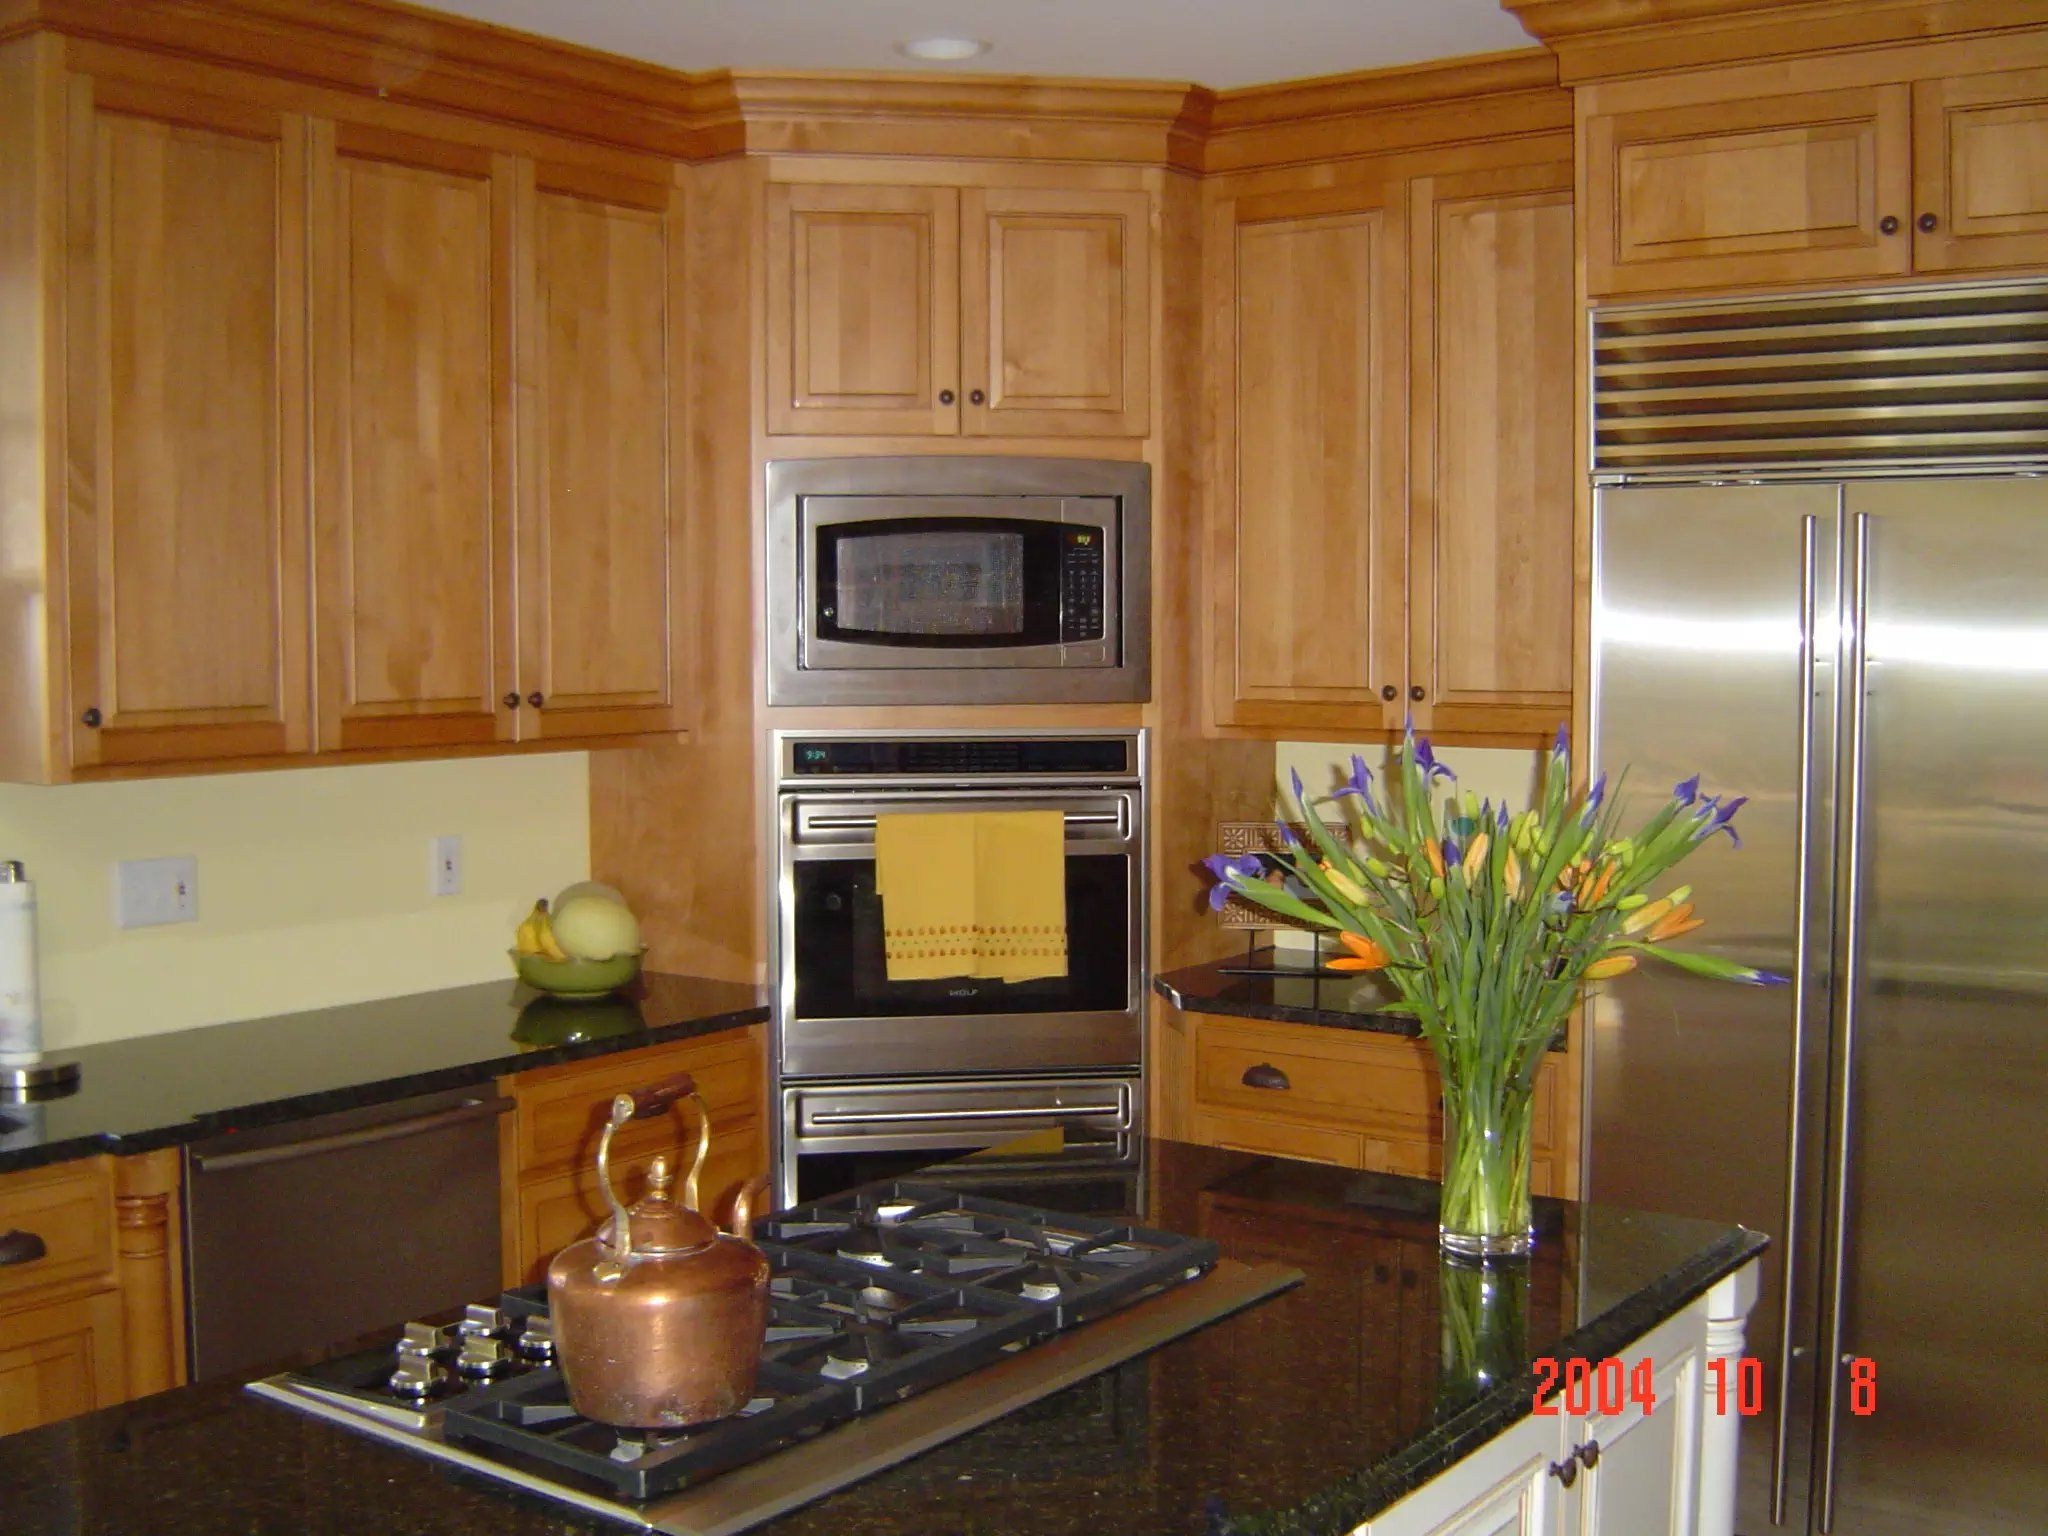 Custom Stained Kitchen Cabinetry By Prestige Cabinets Stained Kitchen Cabinets Custom Cabinetry Cabinetry